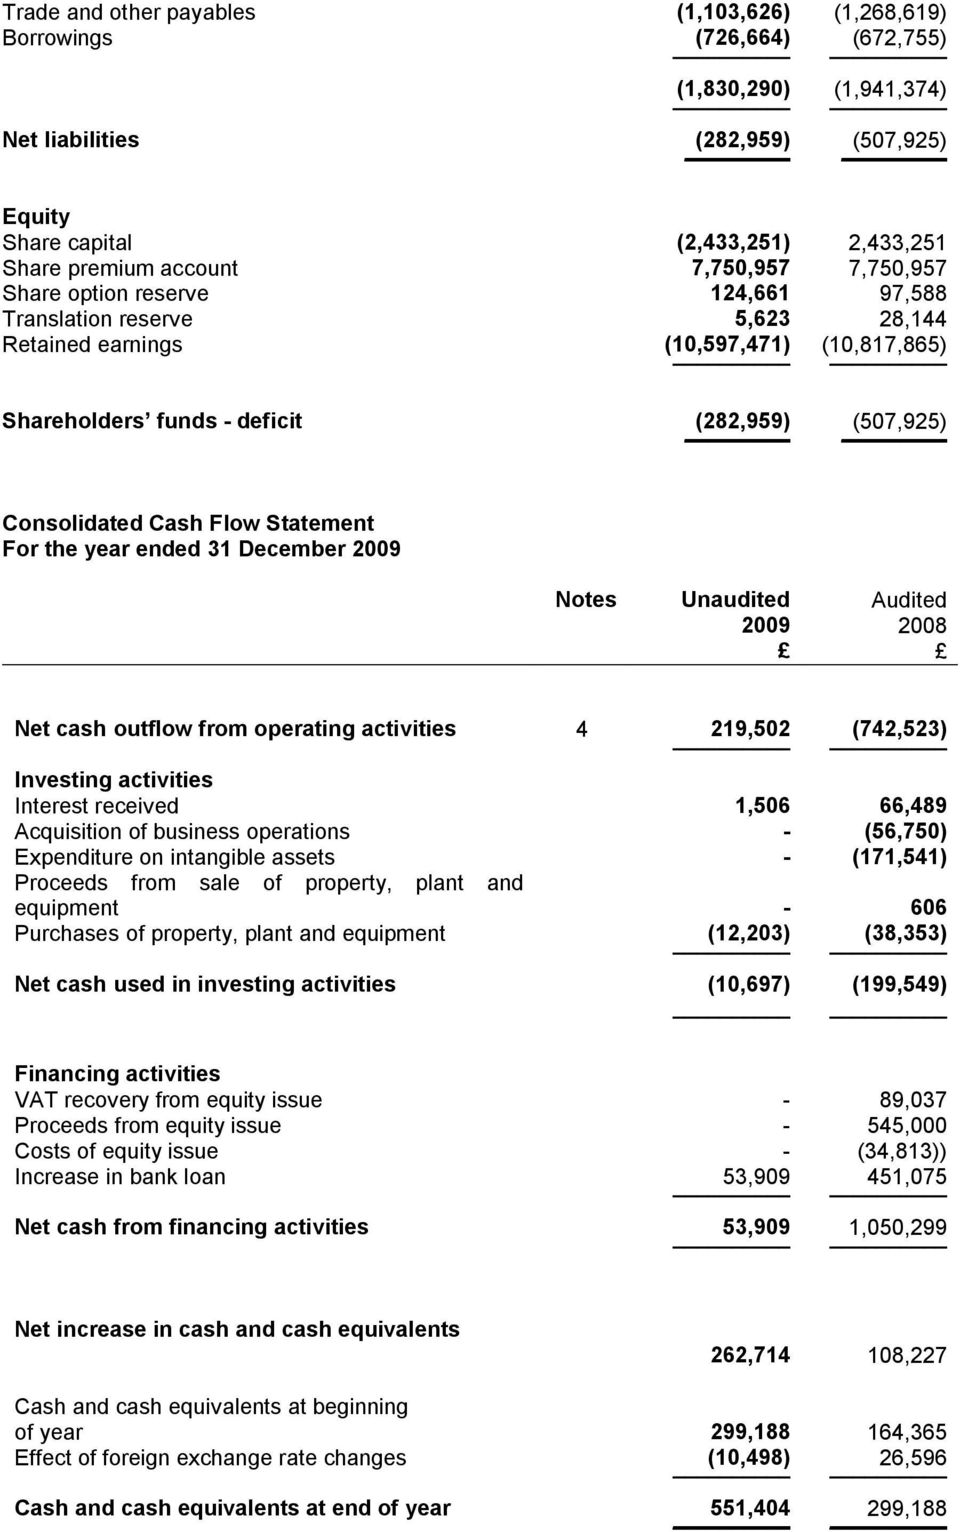 Consolidated Cash Flow Statement For the year ended 31 December 2009 Notes Unaudited Audited Net cash outflow from operating activities 4 219,502 (742,523) Investing activities Interest received